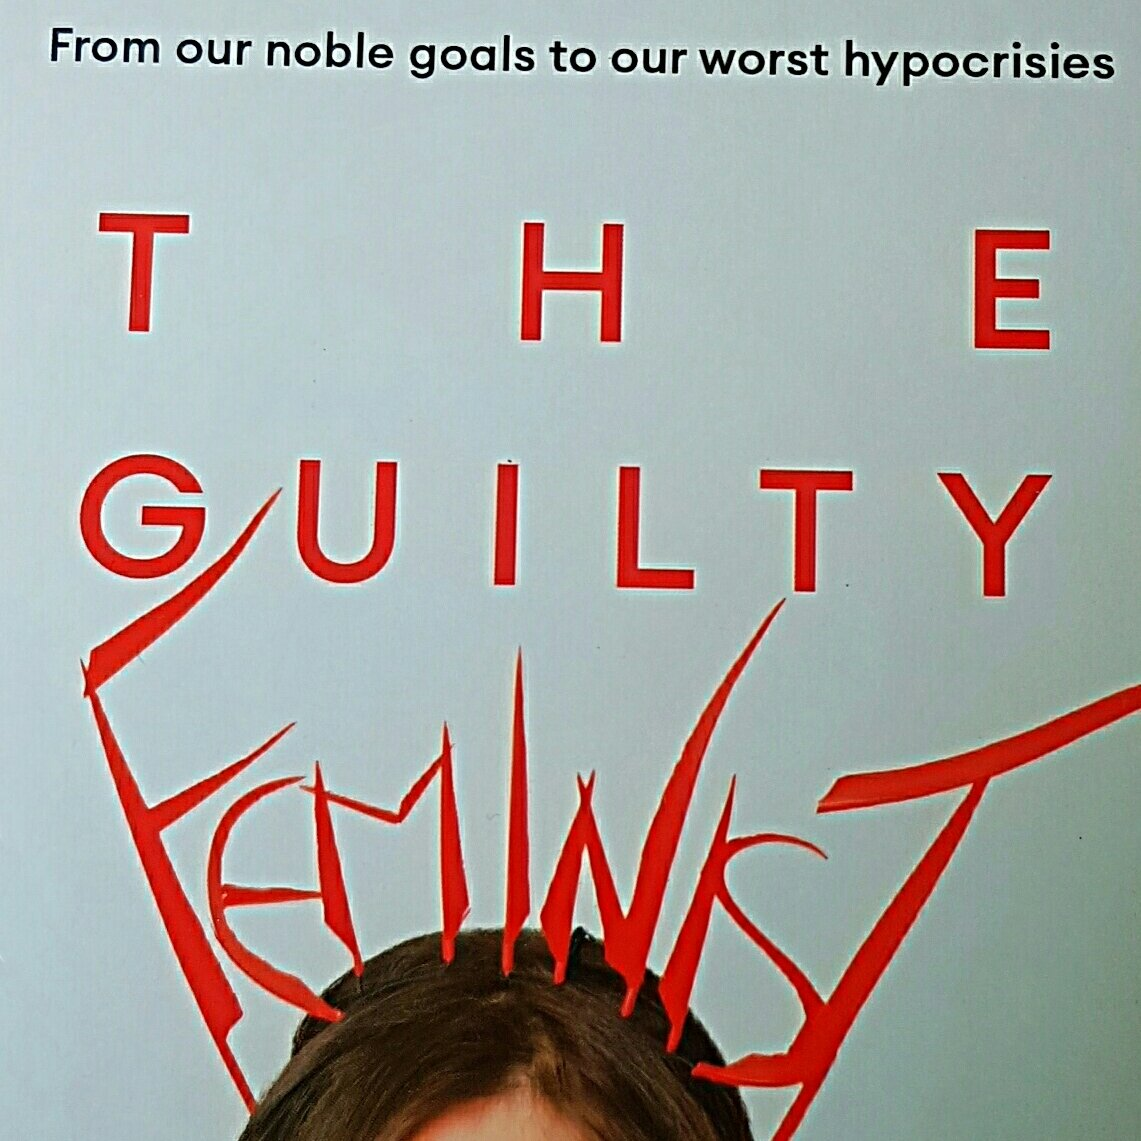 Deborah explores what it means to be a twenty-first-century feminist, and encourage us to make the world better for everyone. #TheGuiltyFeminist #Book #WeekendReadpic.twitter.com/L6lK0nKSom